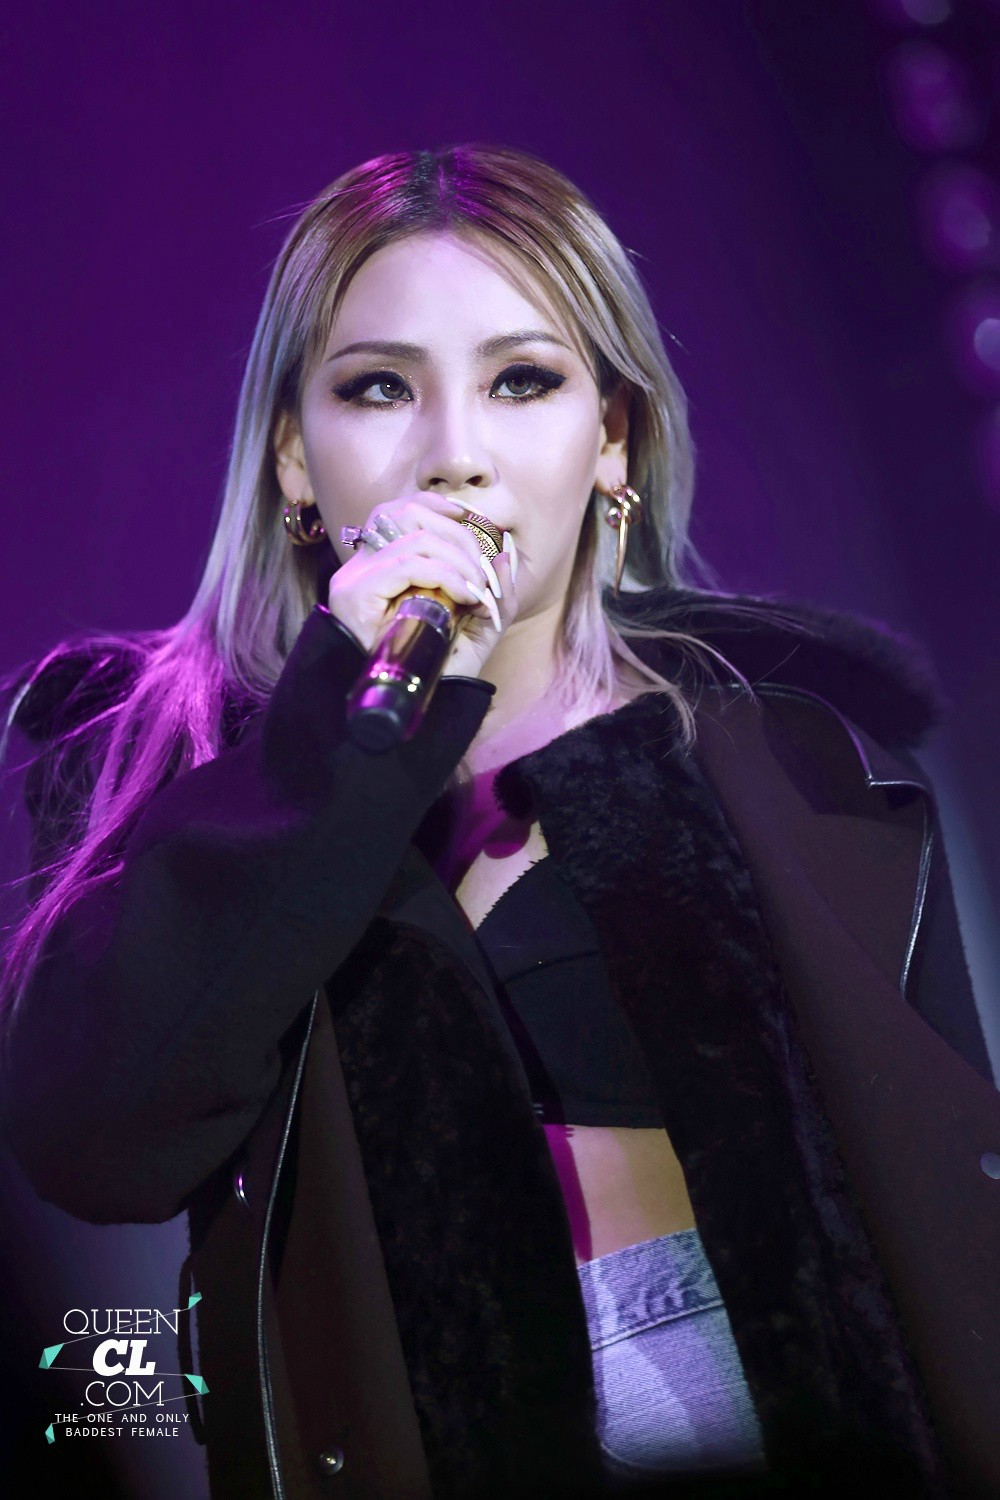 Cl Android Iphone Wallpaper 39103 Asiachan Kpop Image Board